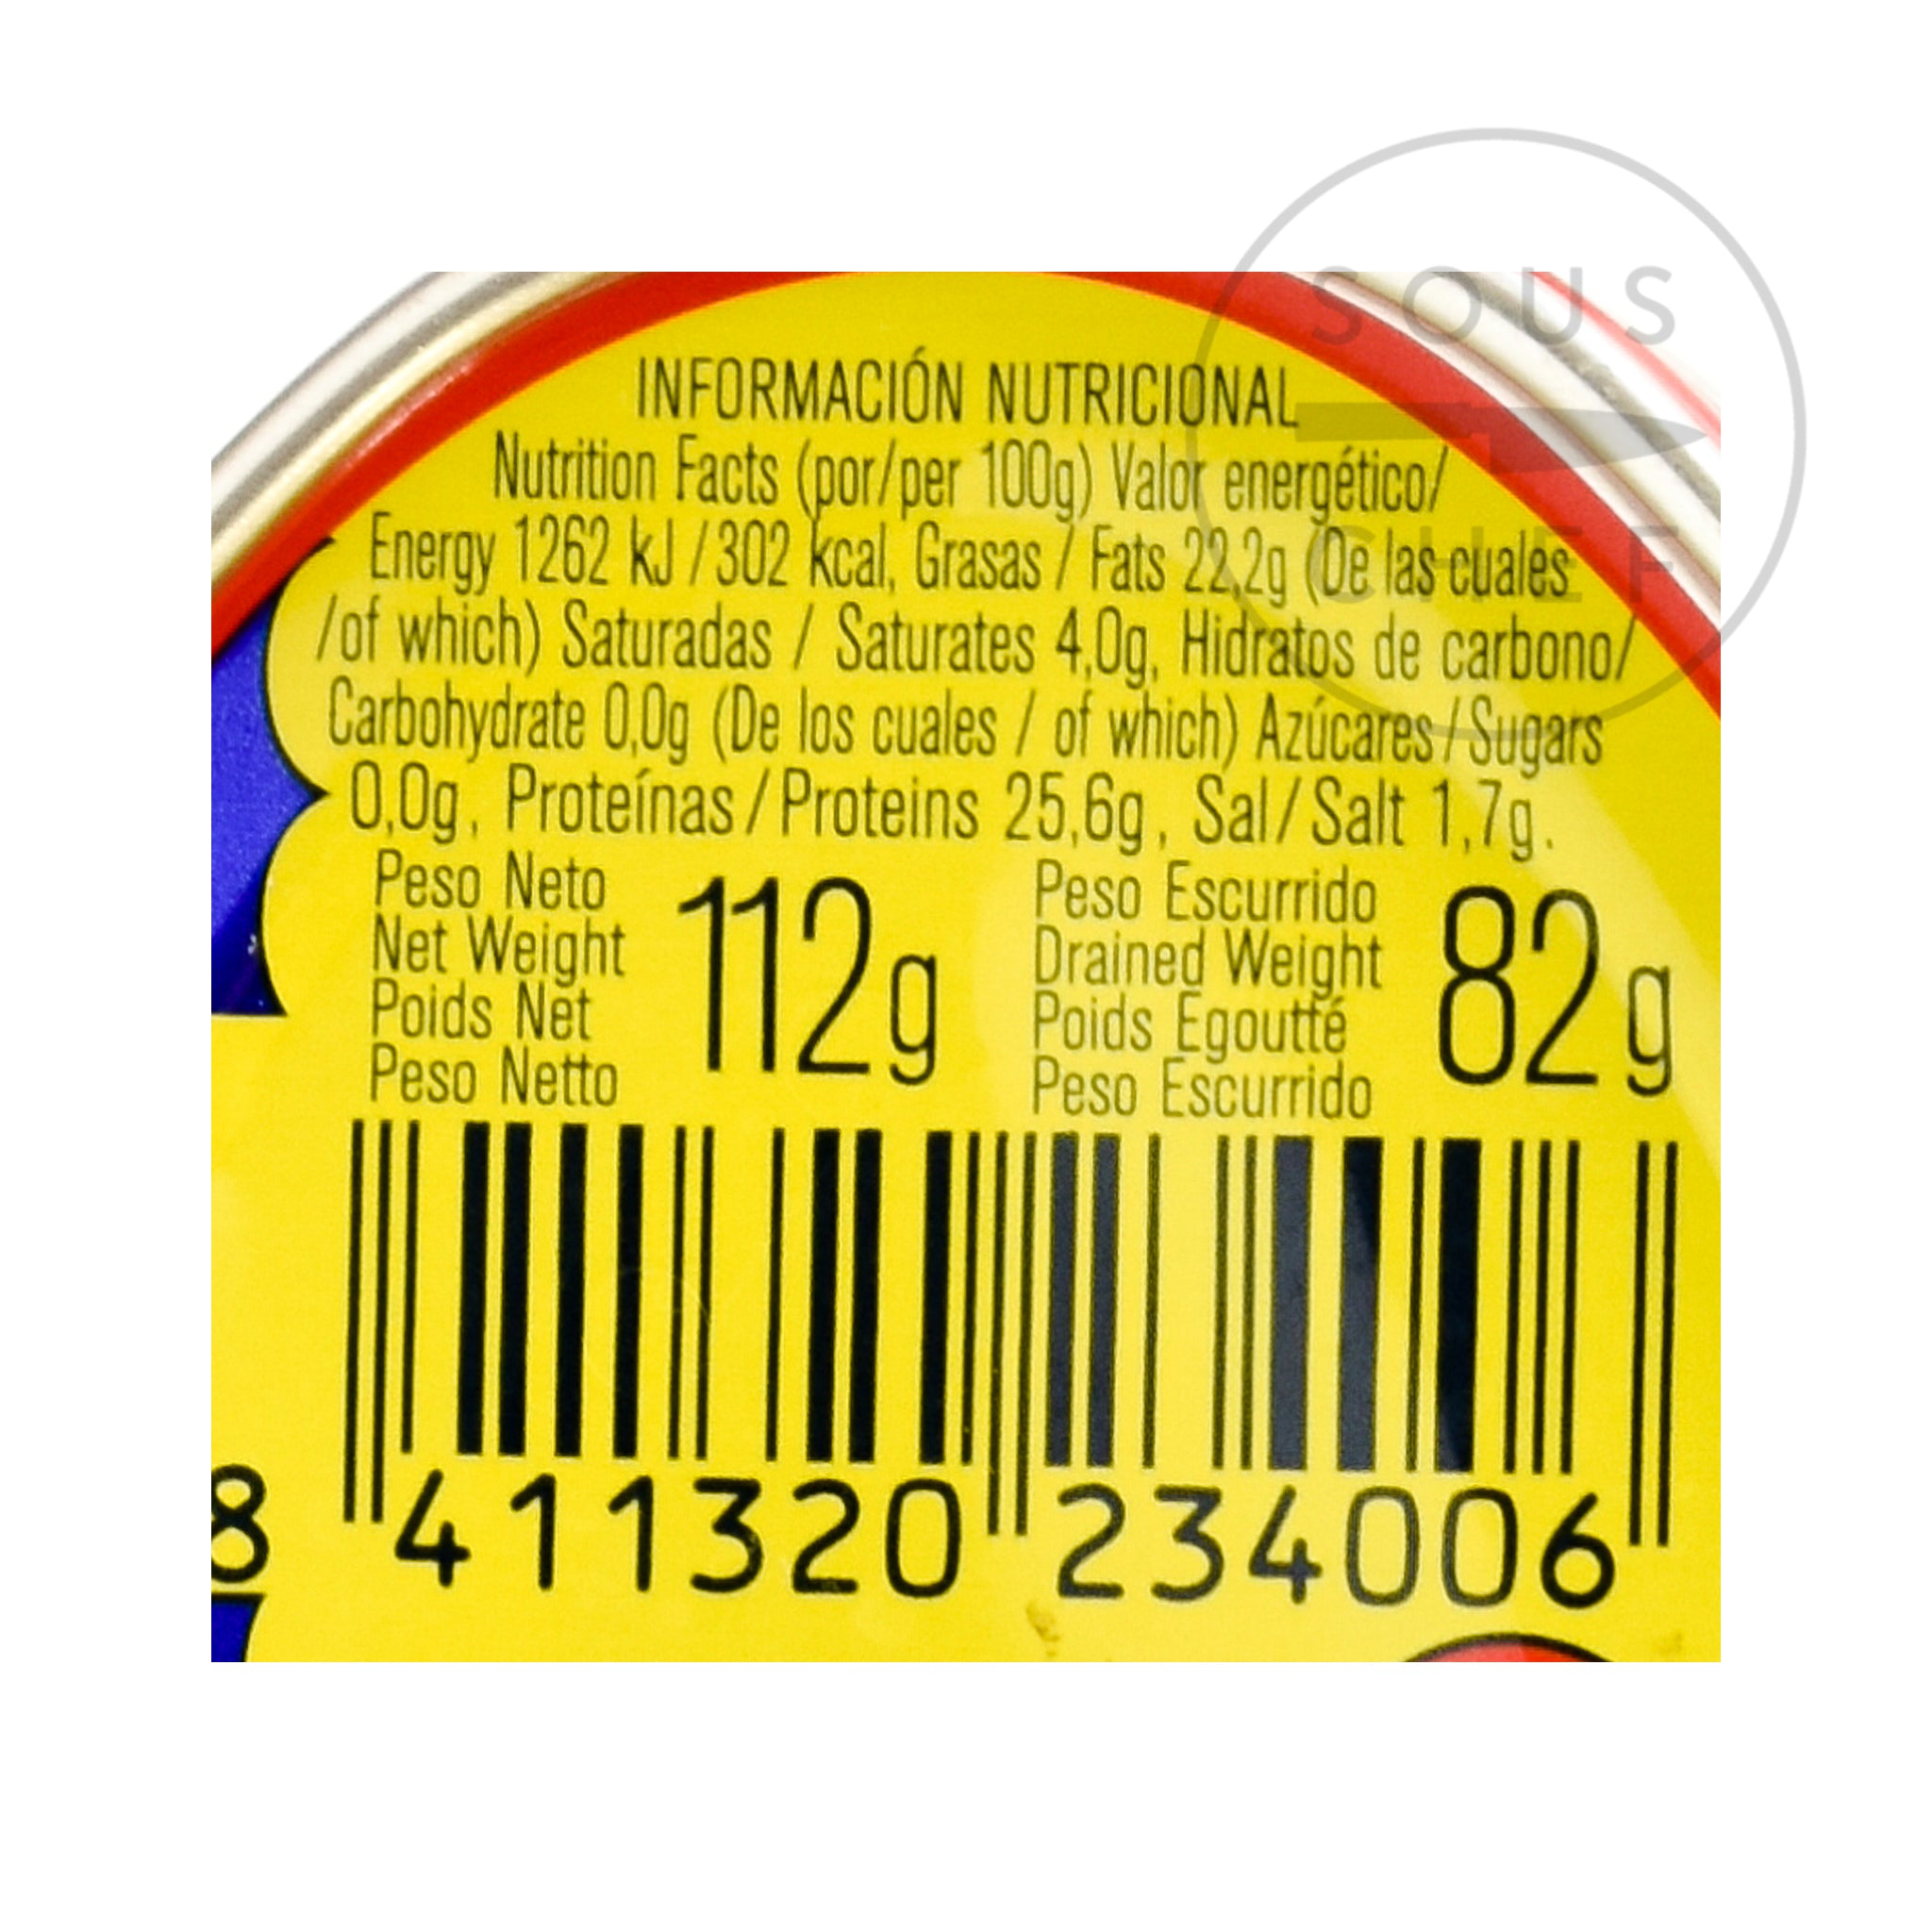 Ortiz Bonito Tuna 115g Ingredients Seaweed Squid Ink Fish Spanish Food Nutritional Information